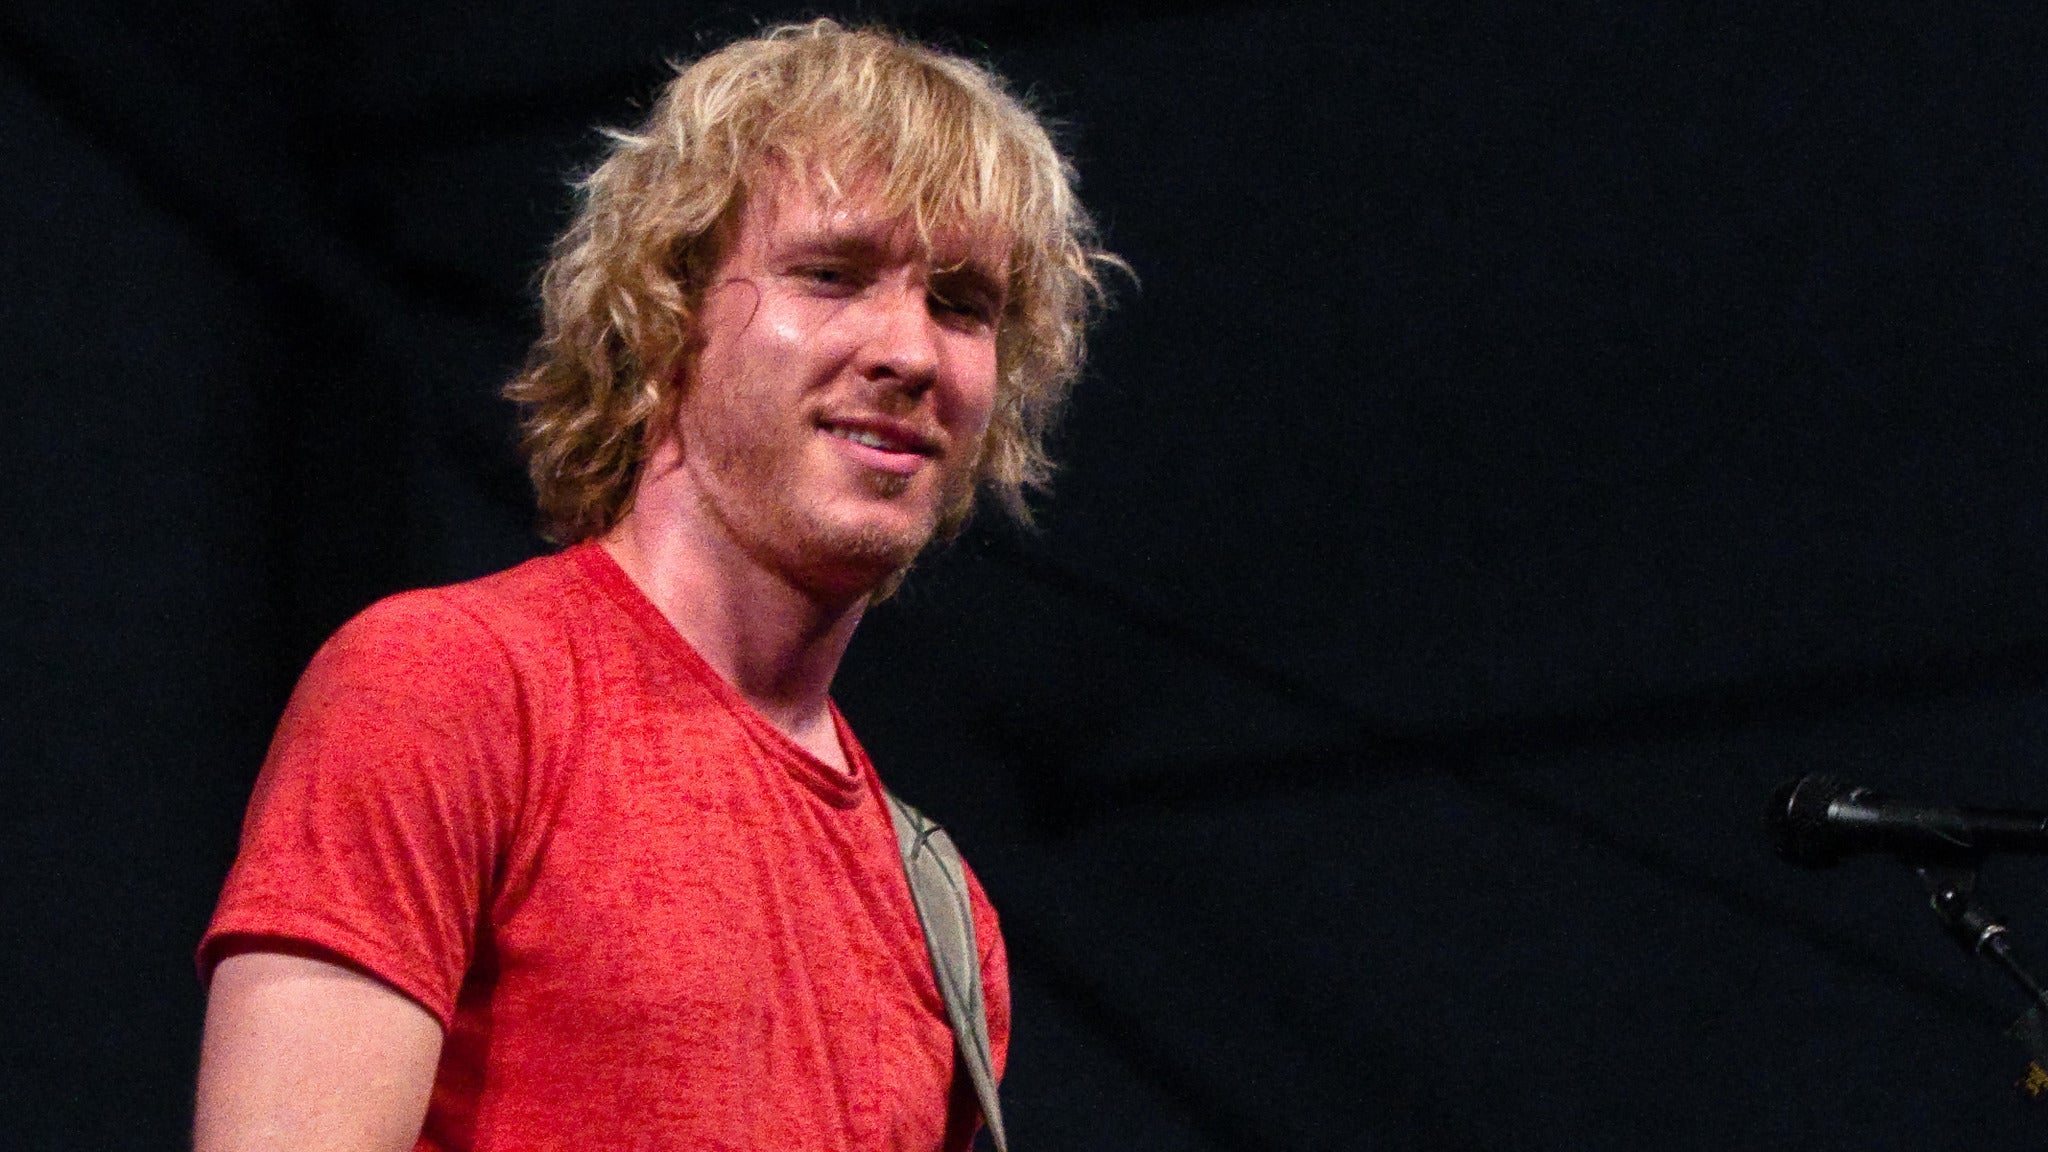 Kenny Wayne Shepherd at Bakersfield Fox Theater